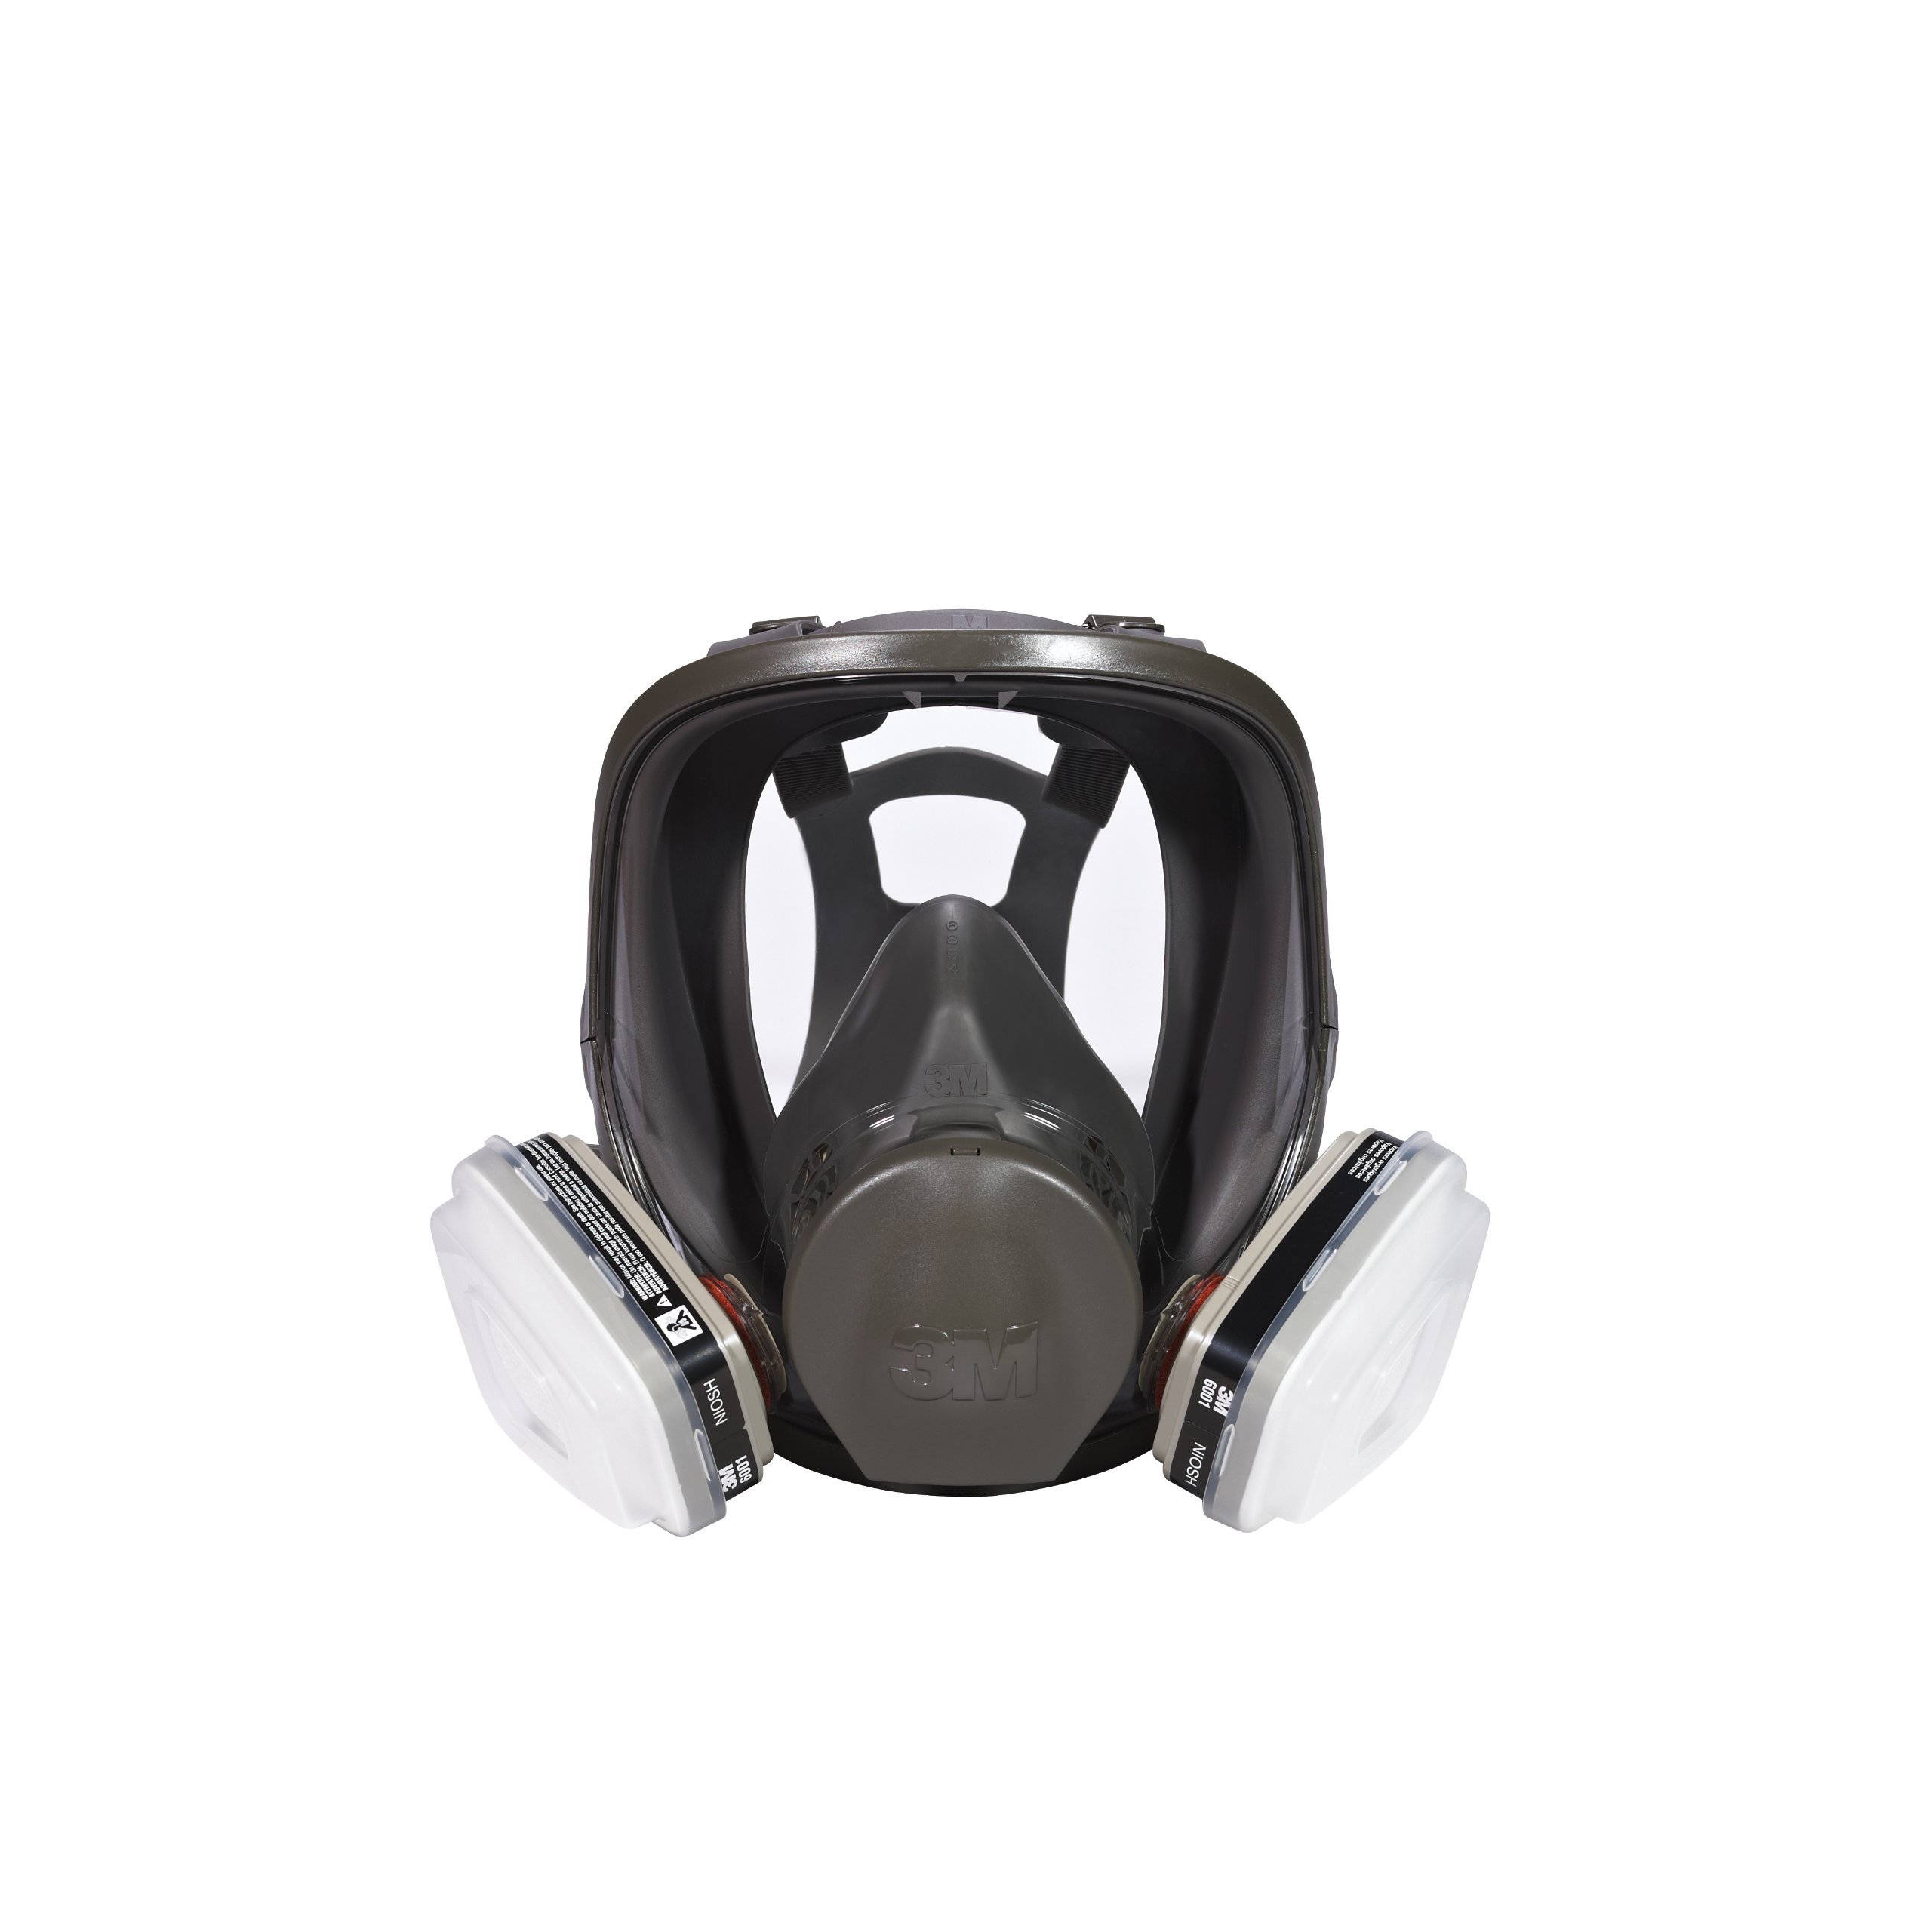 3M Full Face Paint Project Respirator, Large by 3M (Image #2)